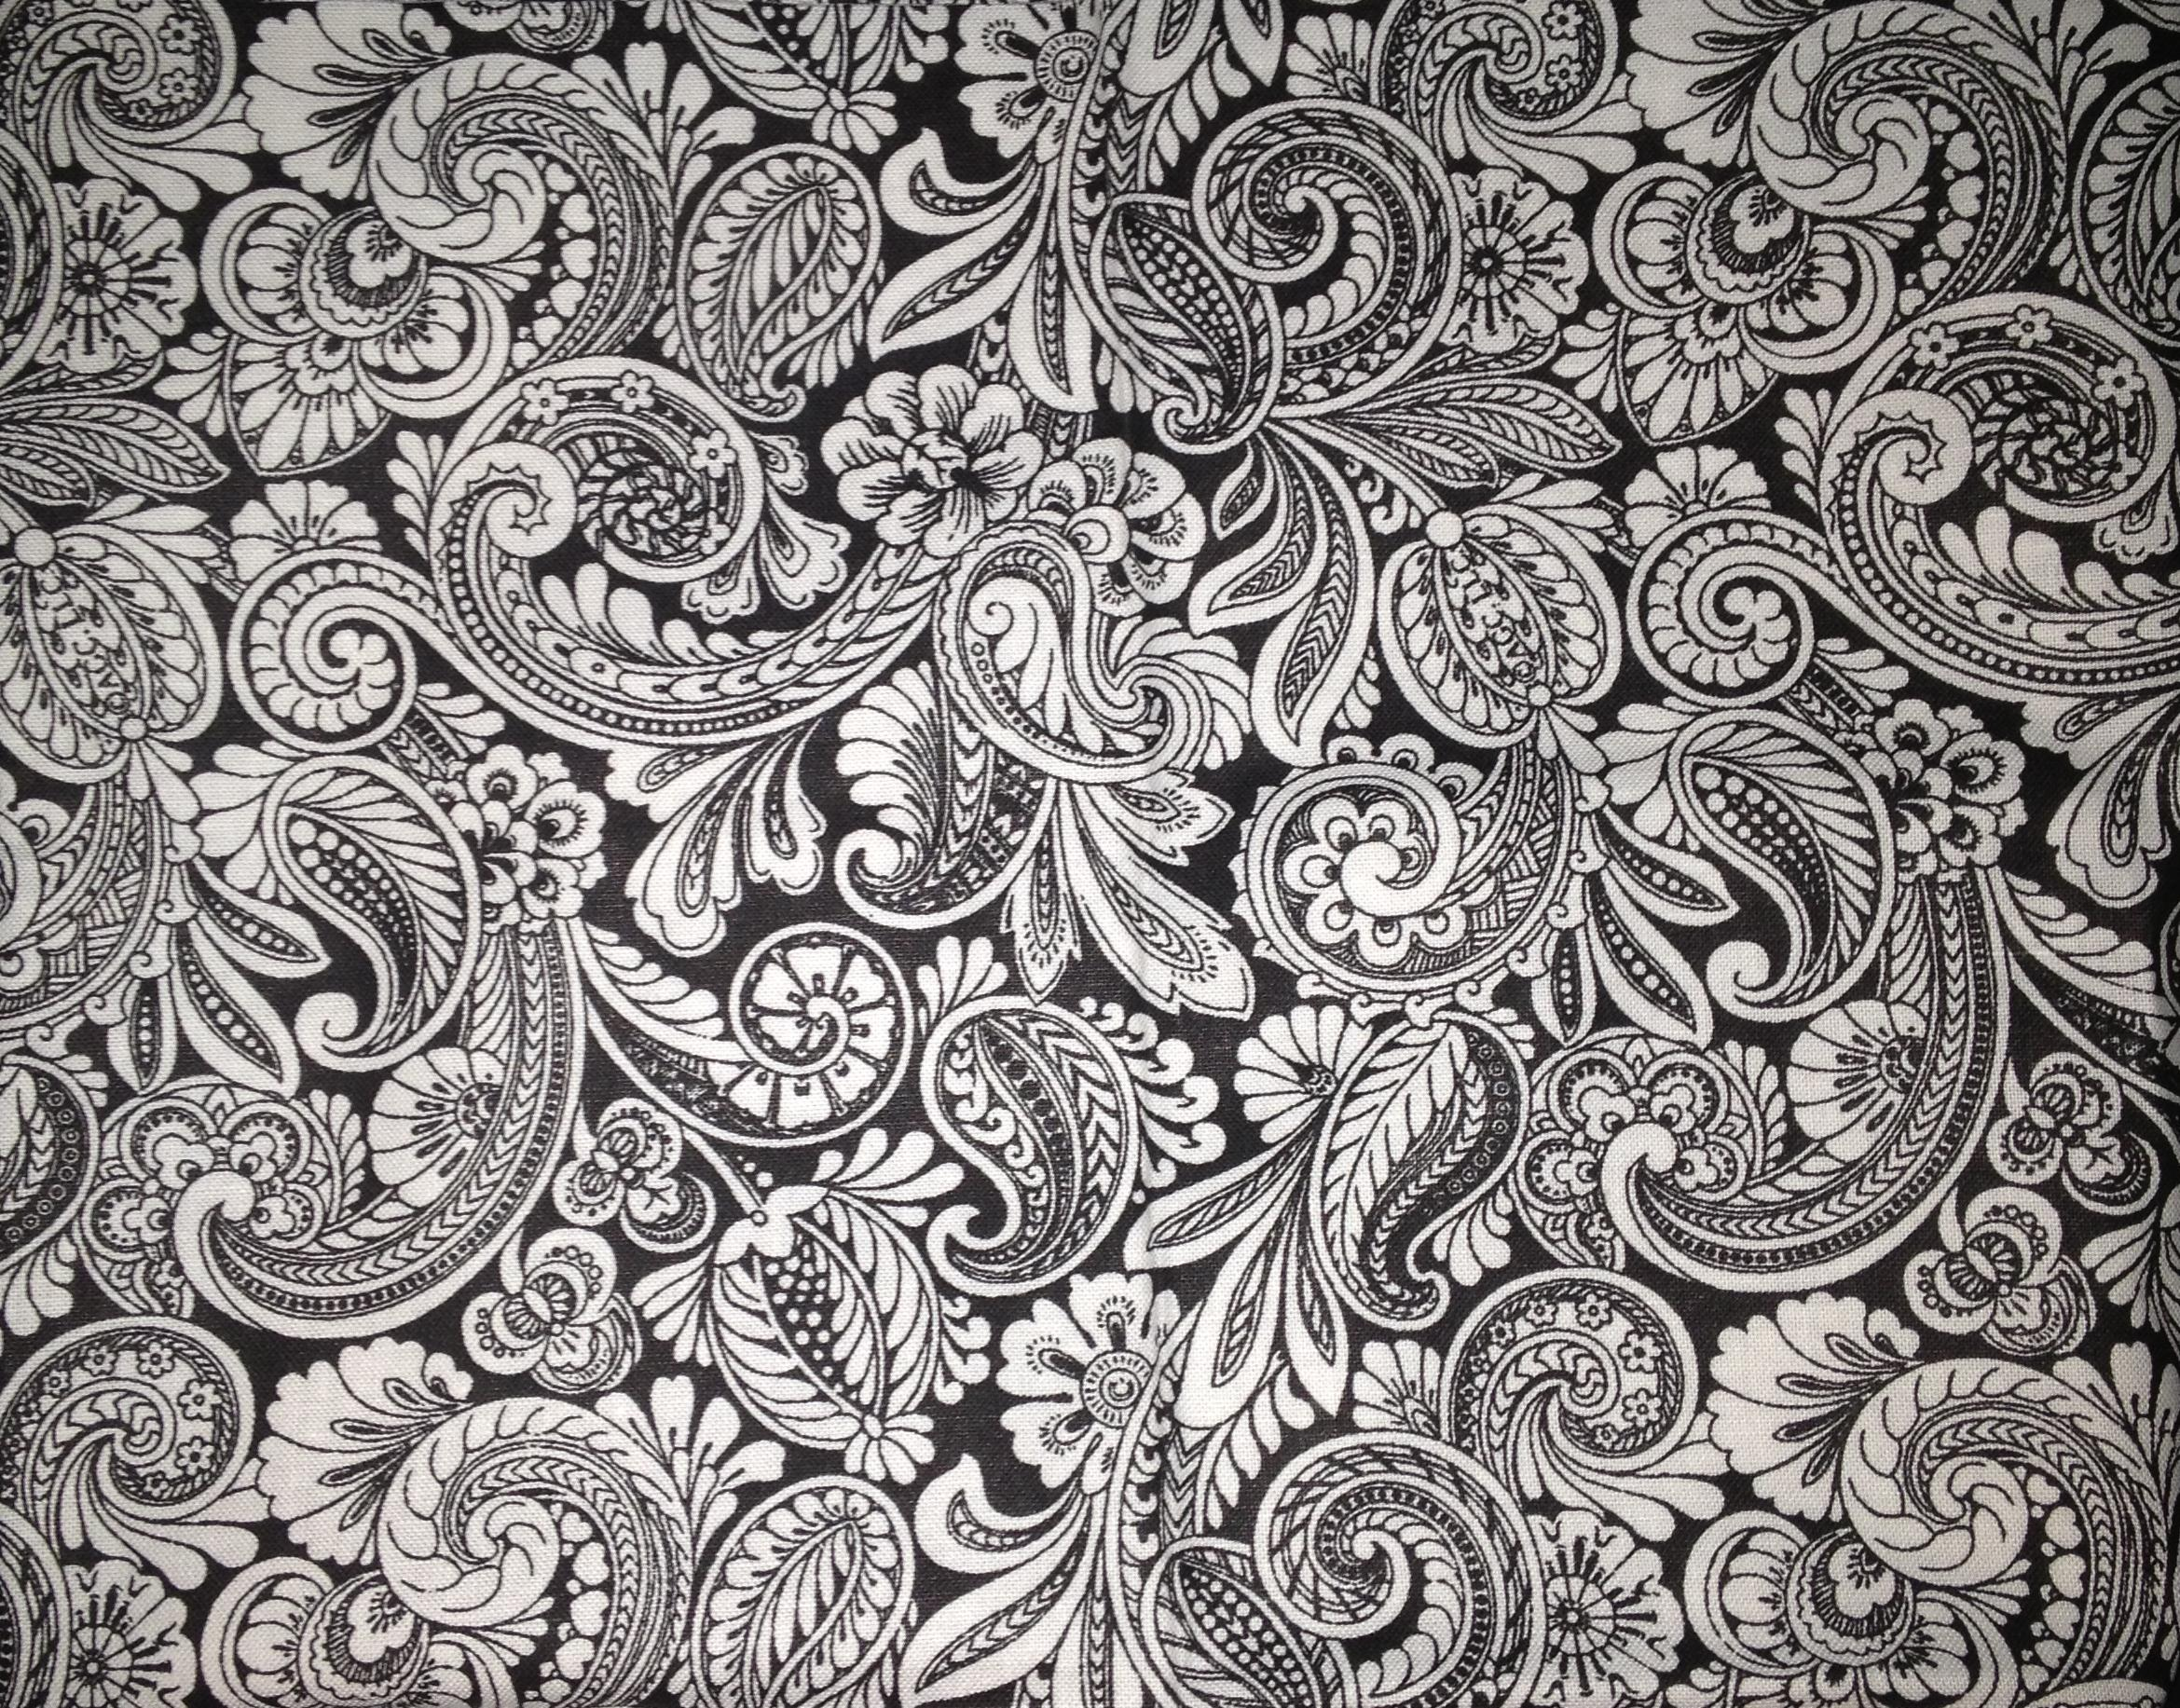 Black and white paisley wallpaper wallpapersafari for Paisley wallpaper